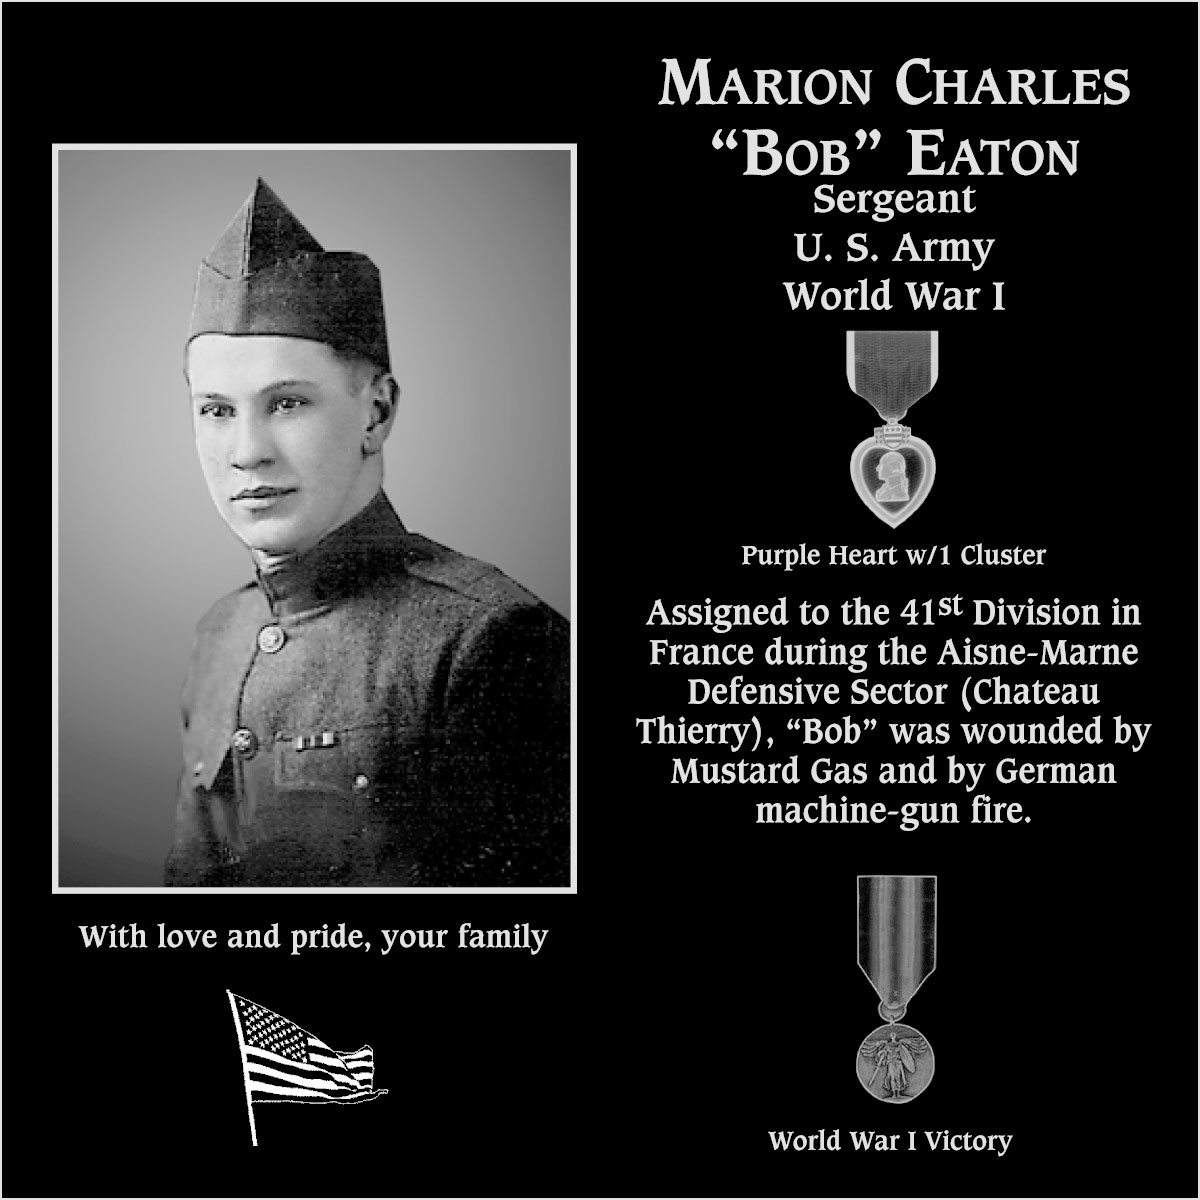 Marion Charles Eaton